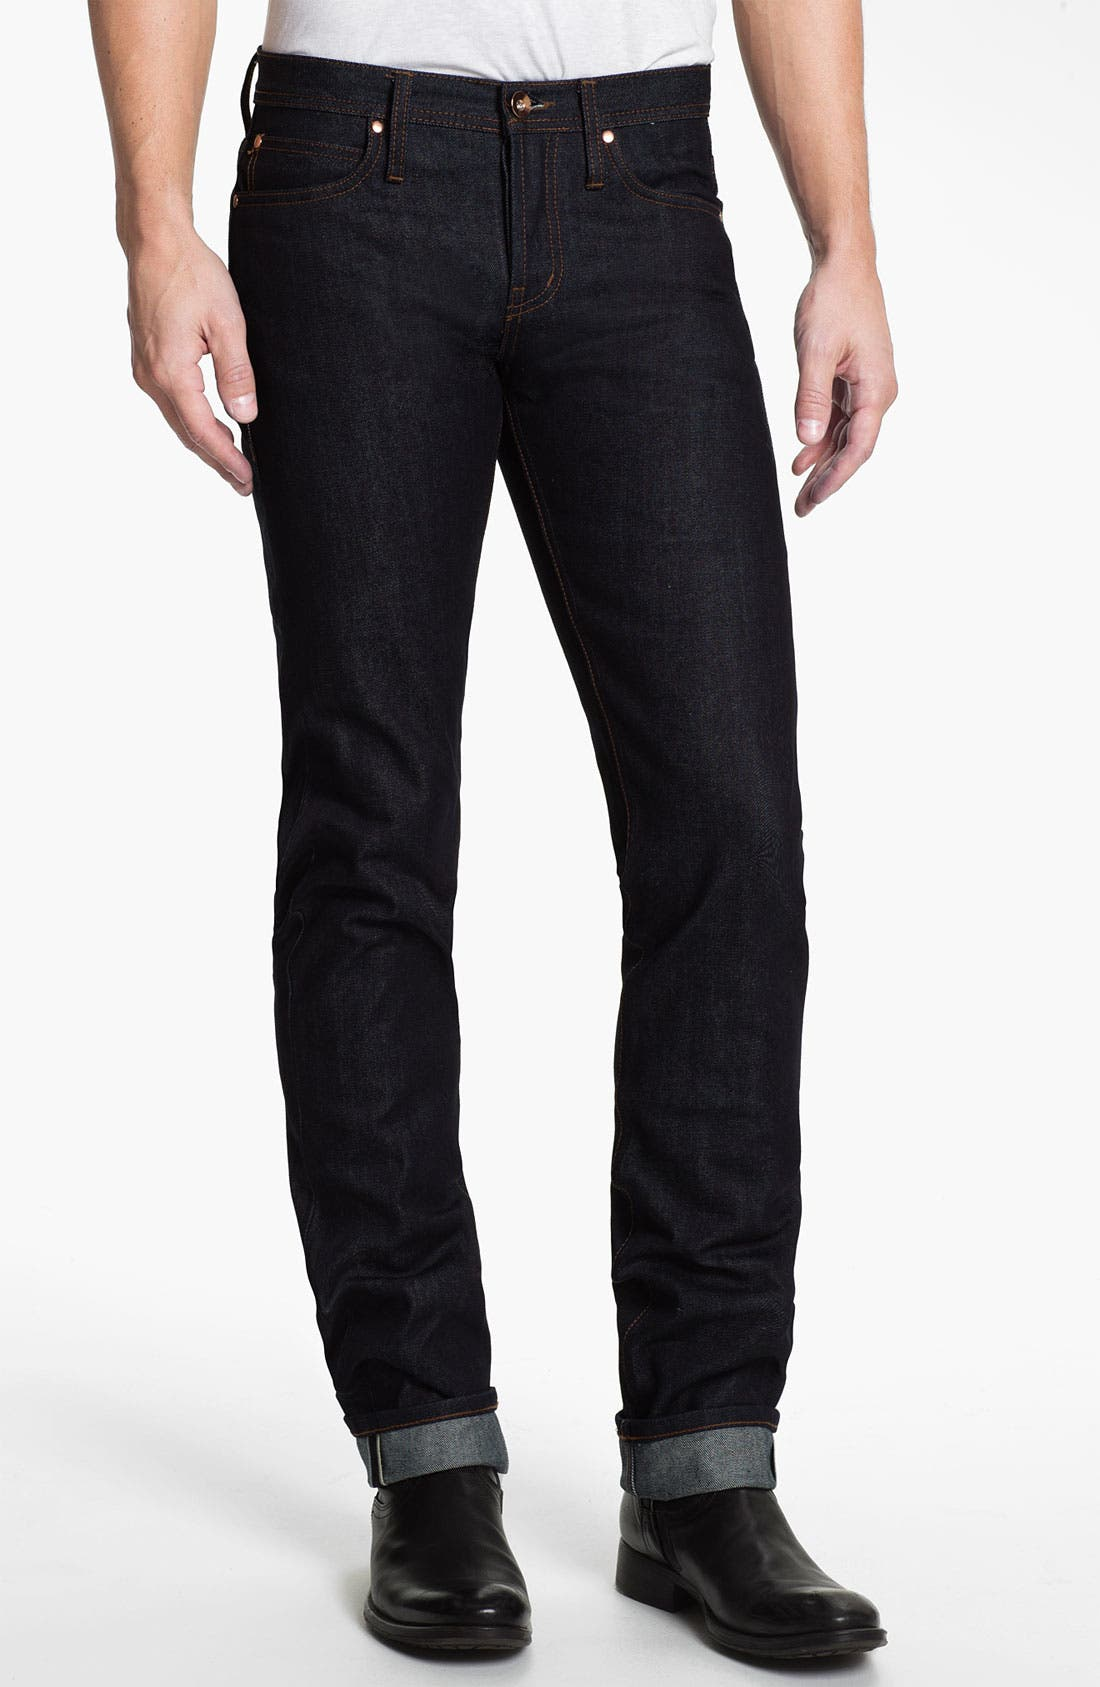 UB101 Skinny Fit Raw Selvedge Jeans,                         Main,                         color, INDIGO